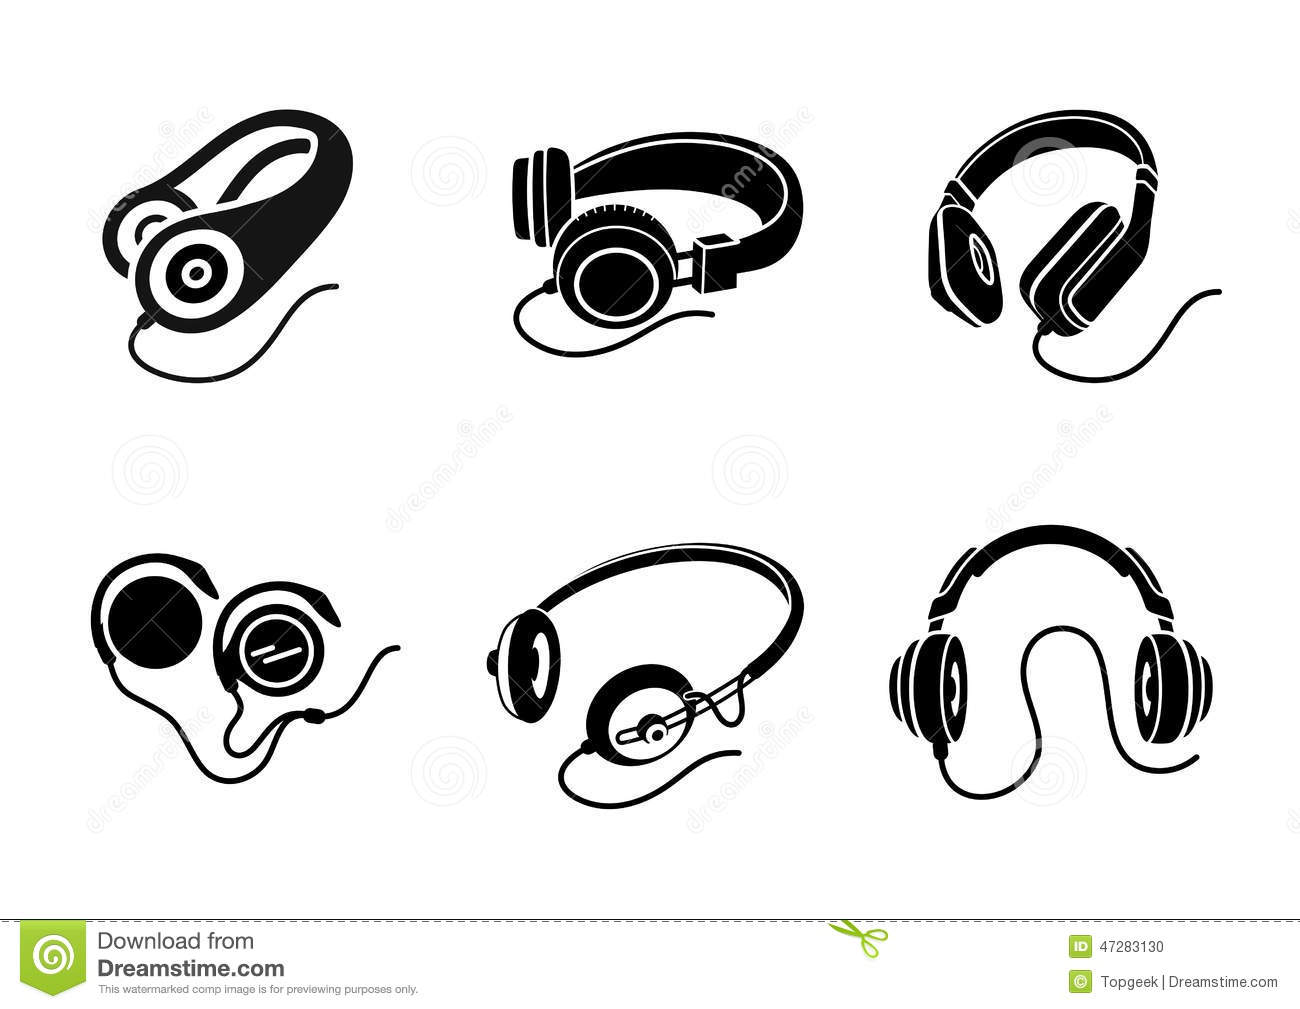 Stock Illustration Headphones Icon Set Black White Background Multimedia Devices Different Types Headphone Designs Image47283130 together with 1994 Xr600r Wiring Diagram in addition November 2017 Calendar India 4 likewise Clipart Showcard Border 512x512 C491 as well . on electrical wire designs